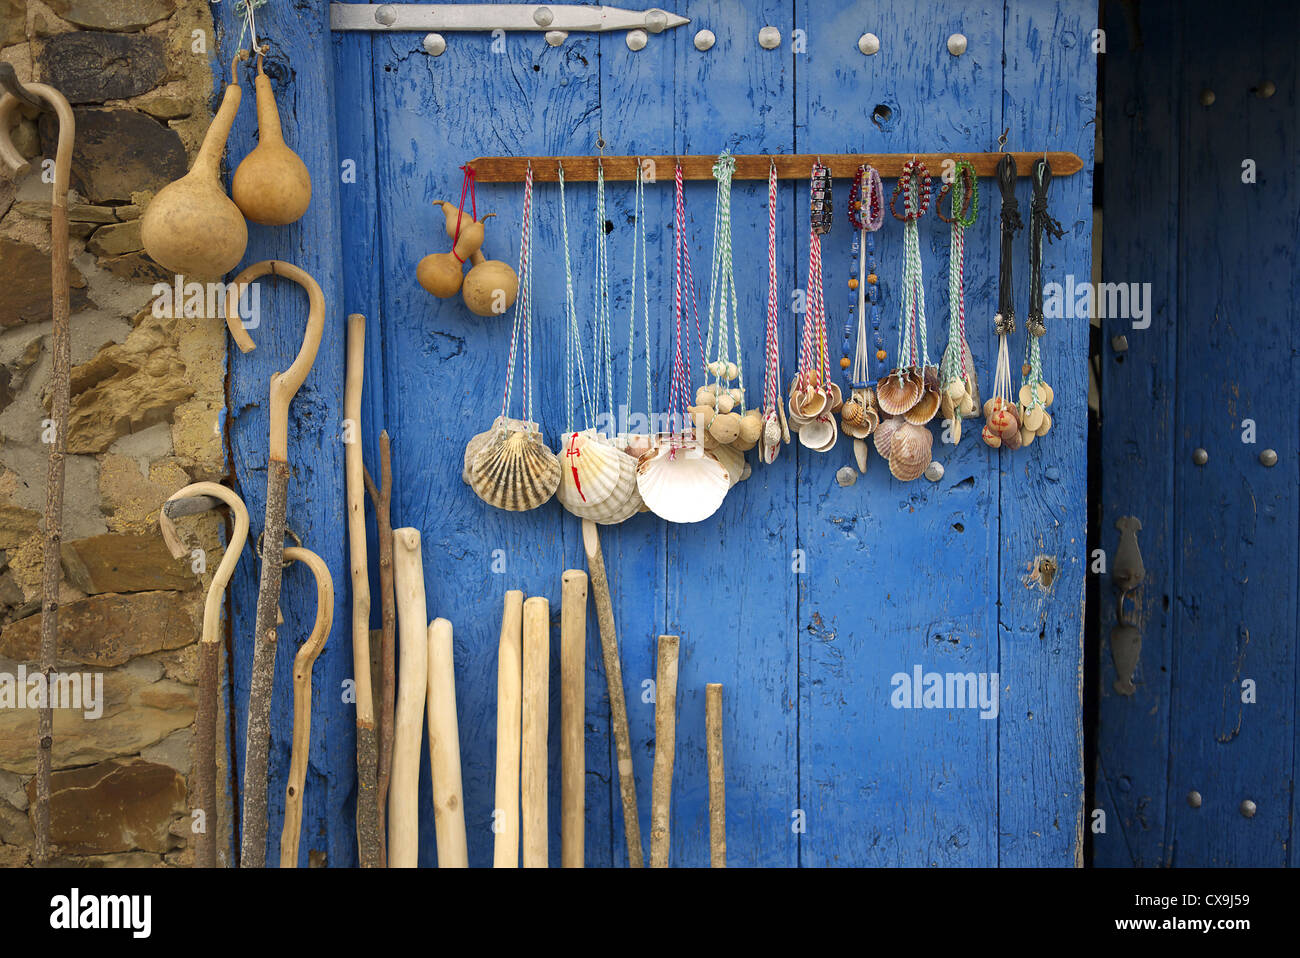 Scallop shells, walking sticks and camino souvenirs on sale along the camino in Spain. Stock Photo